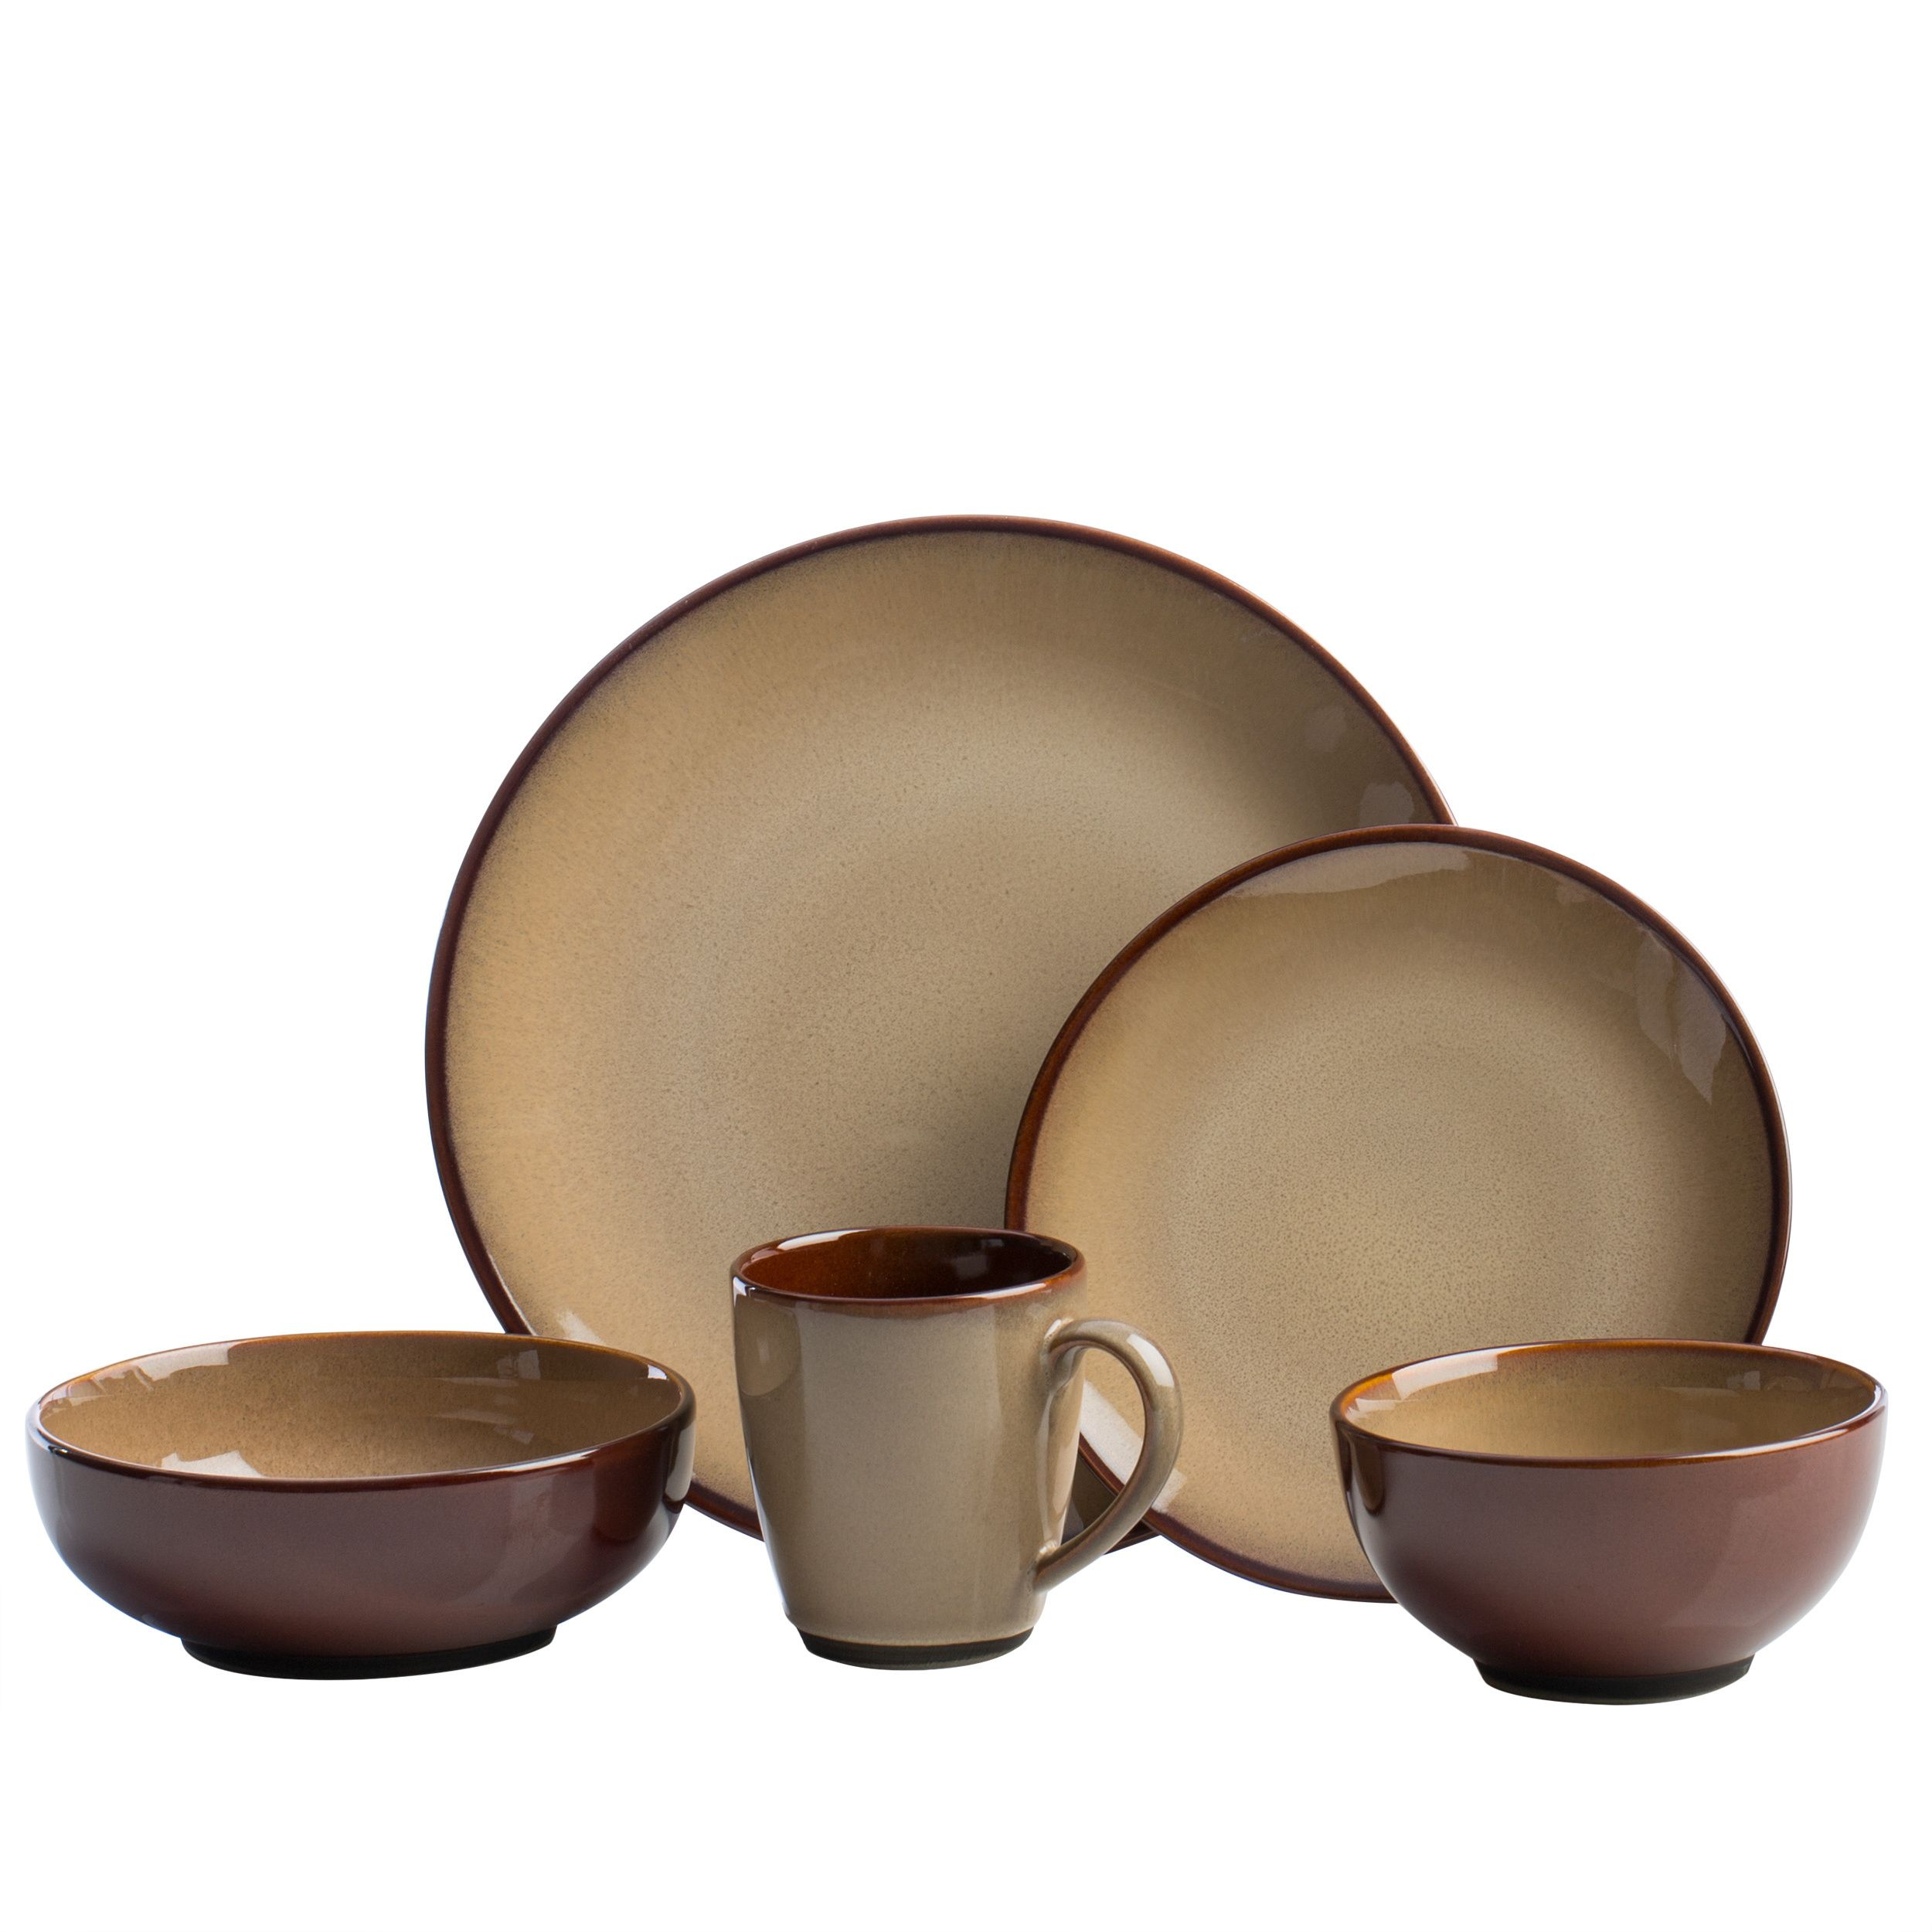 This Nova Brown 40-piece stoneware dinnerware set has a rustic look and casual style  sc 1 st  Pinterest & This Nova Brown 40-piece stoneware dinnerware set has a rustic look ...